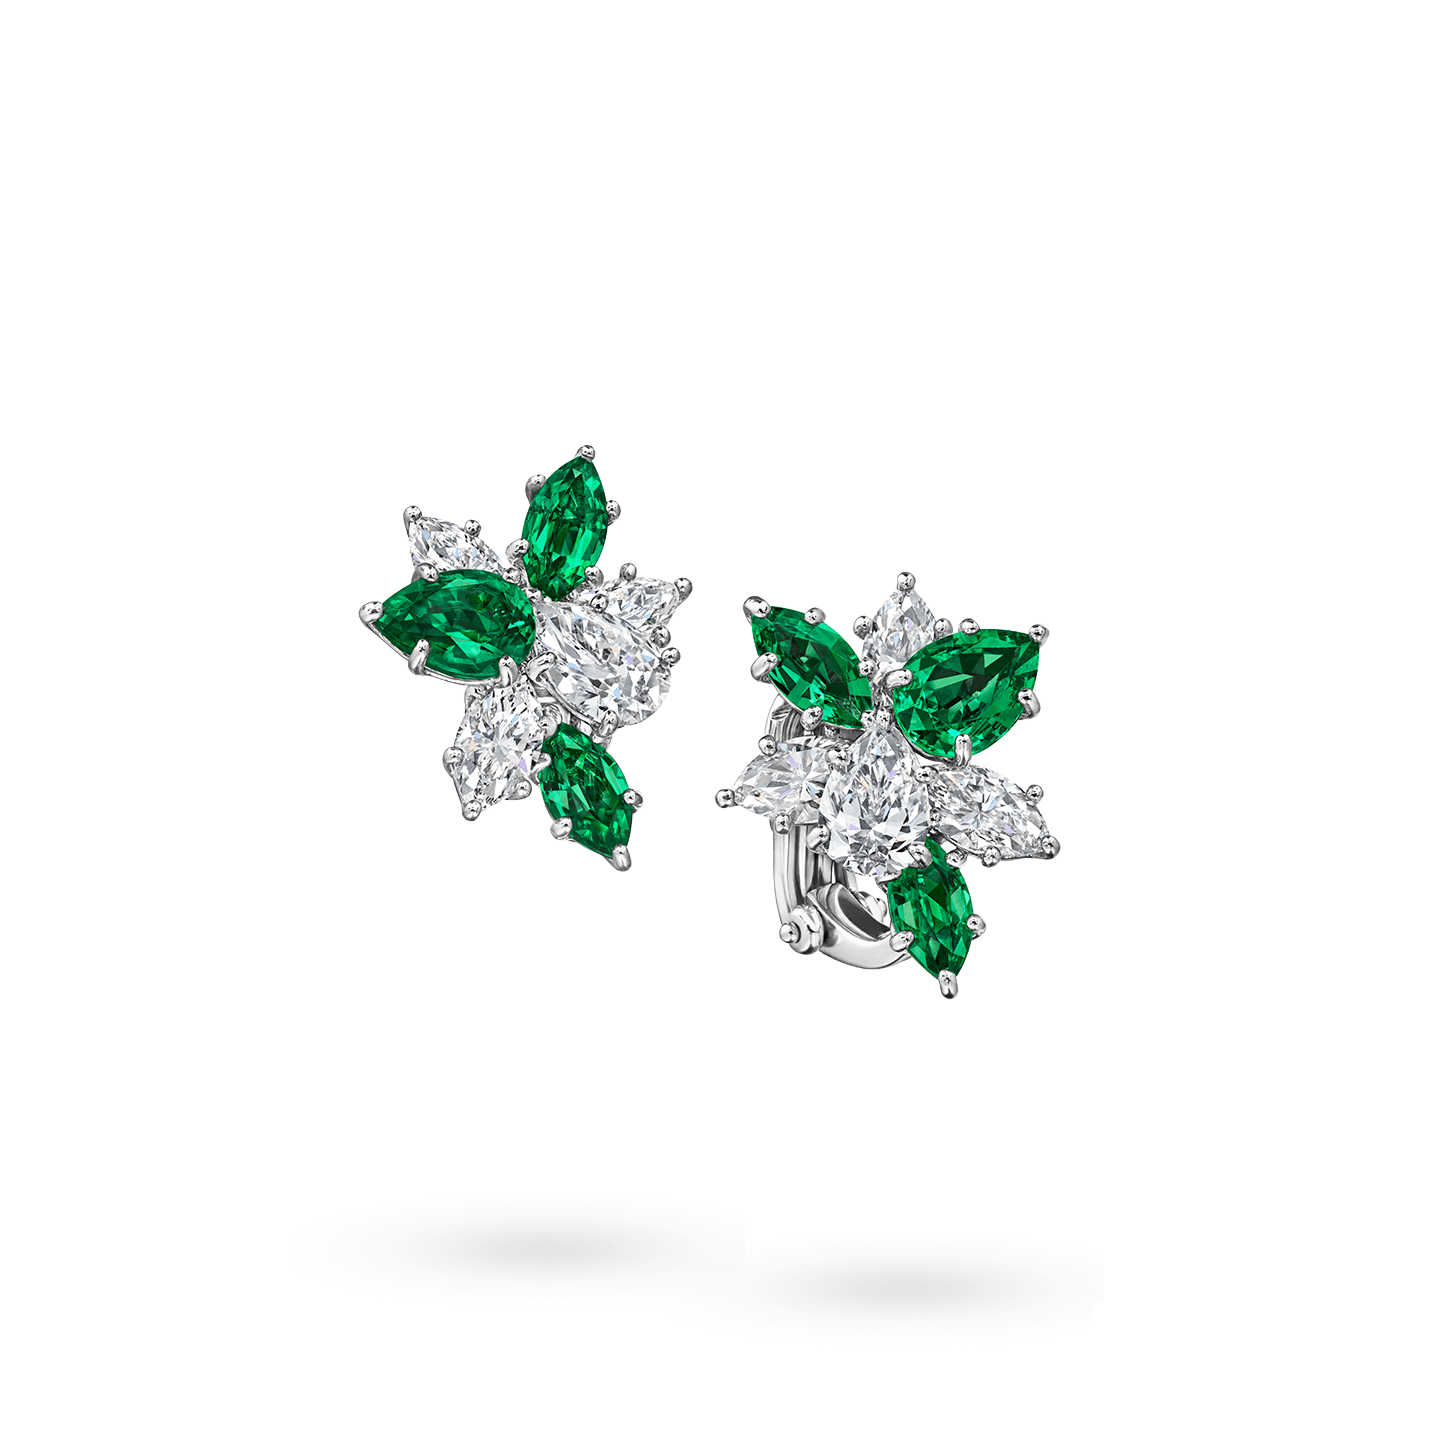 Winston Cluster Emerald and Diamond Earrings, Product Image 2